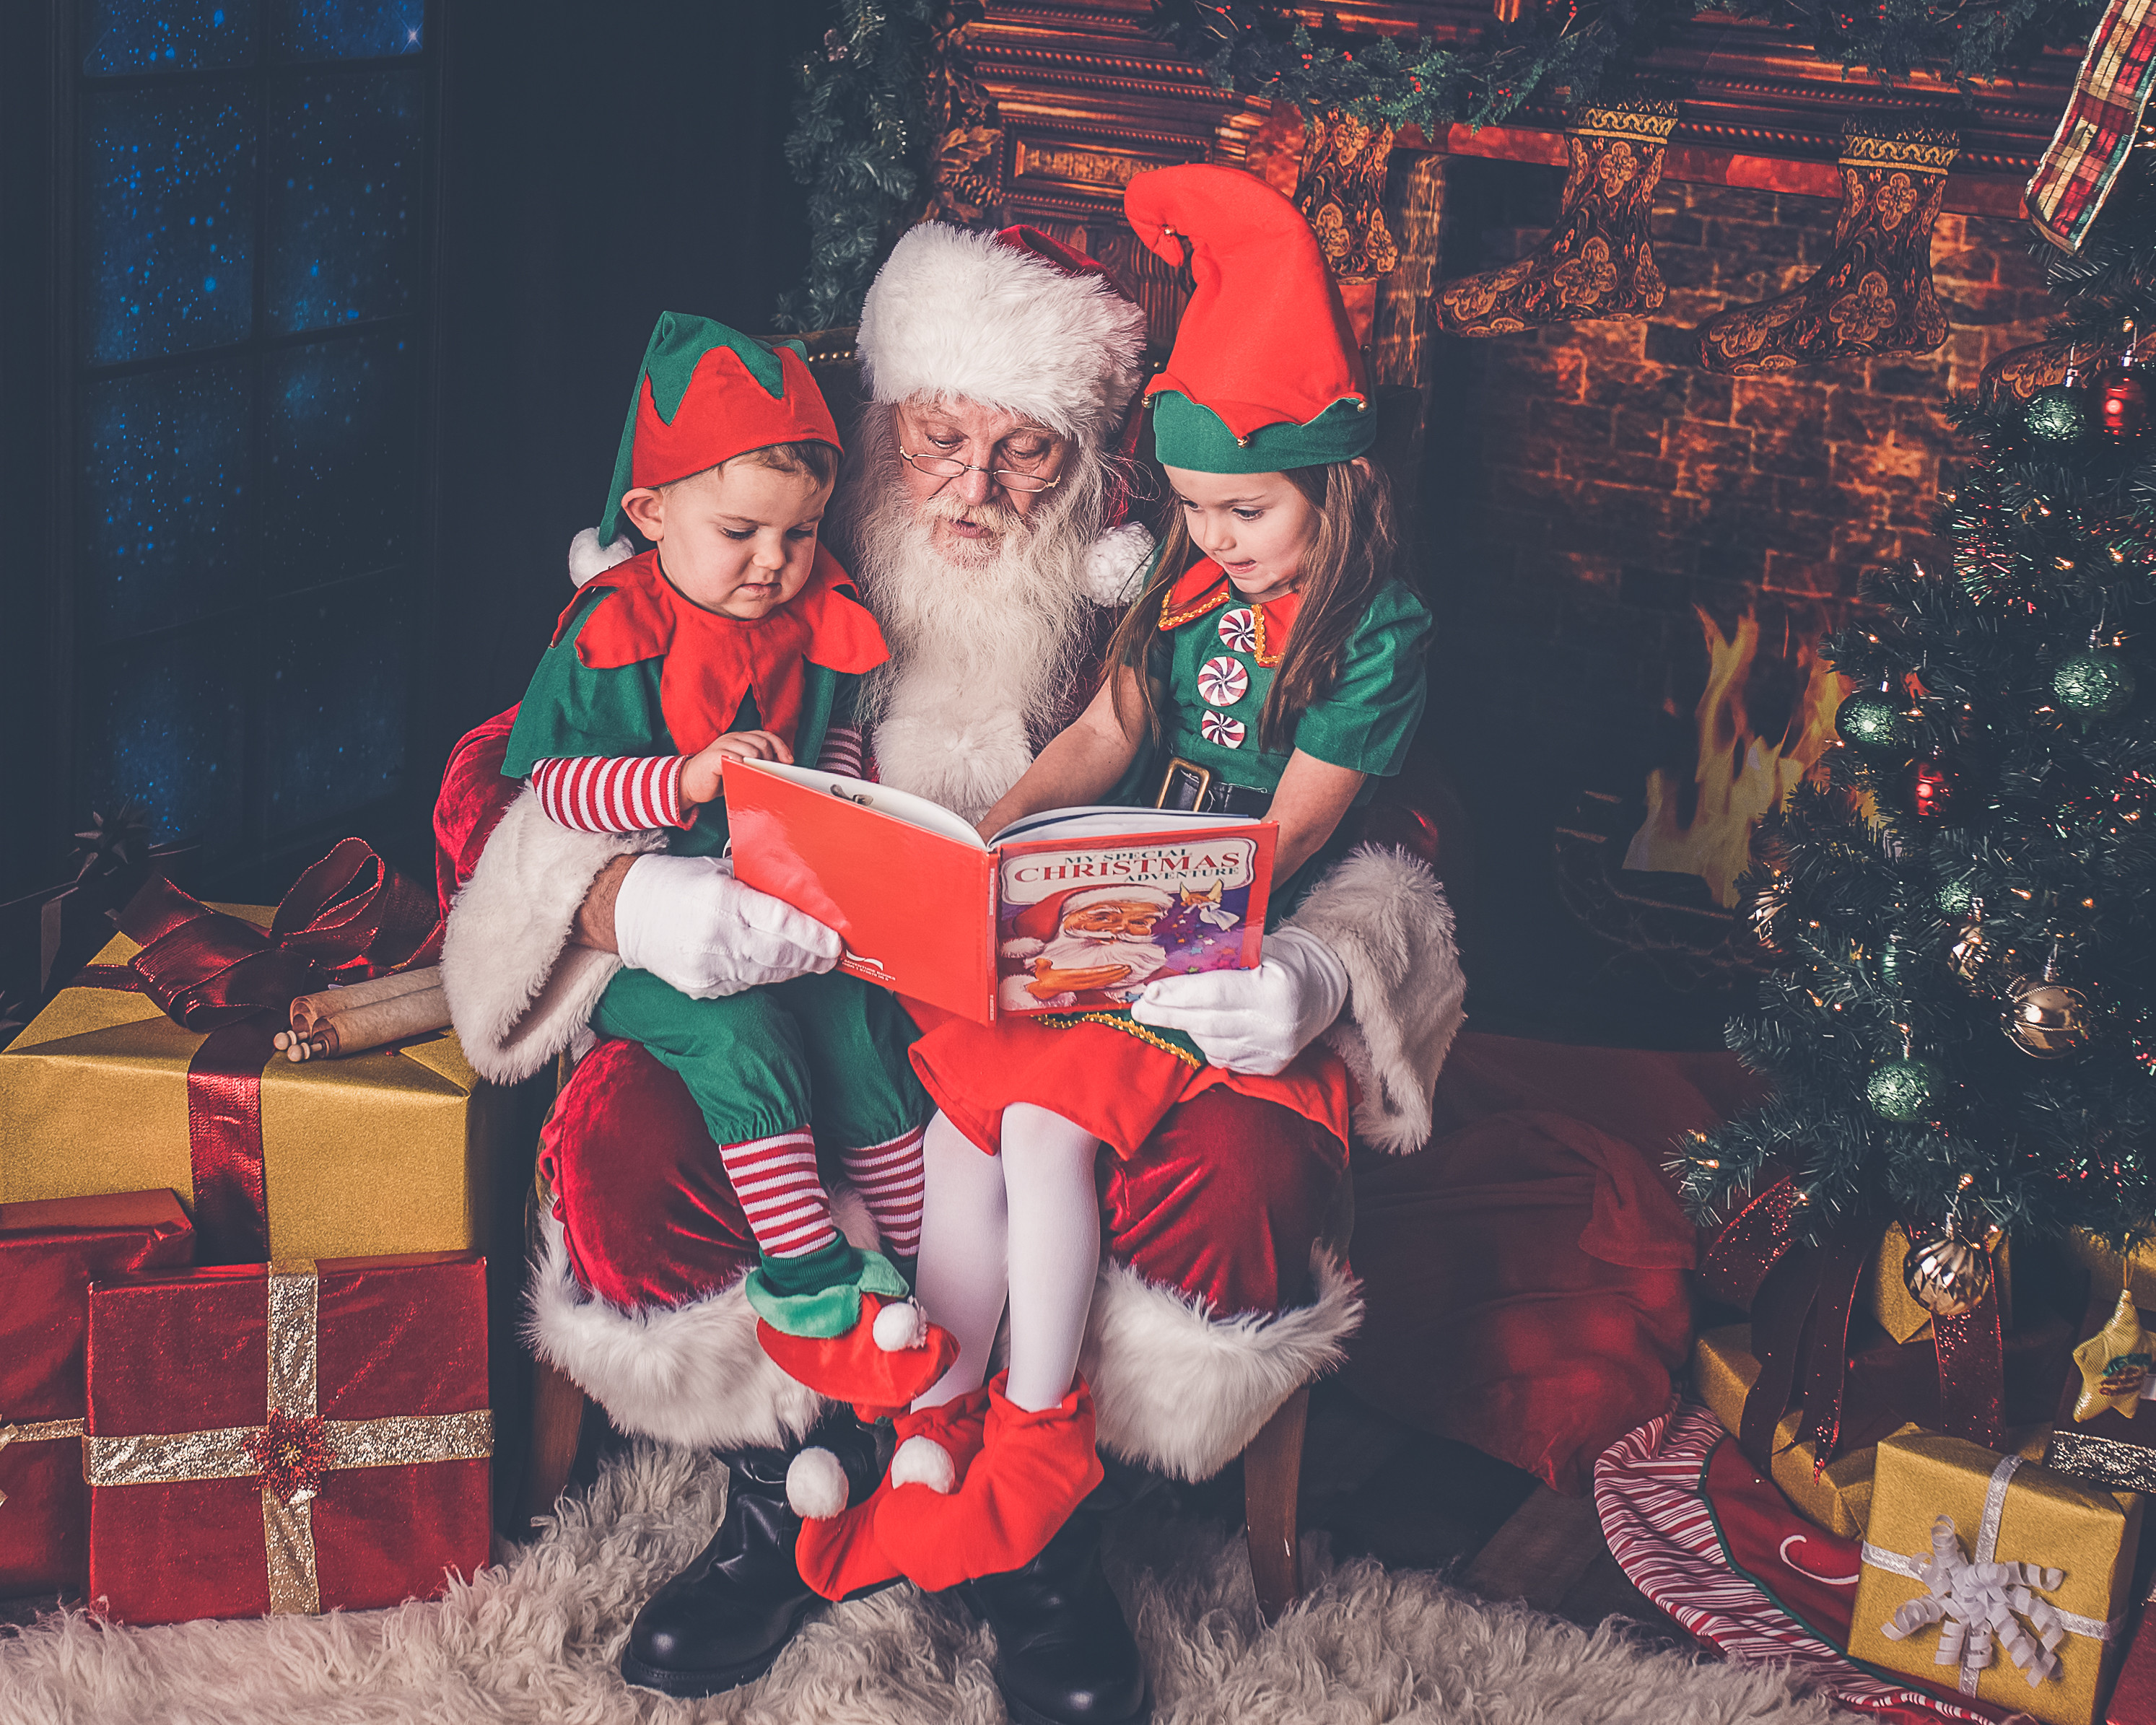 Santa's Knee Only (3 Images) $105